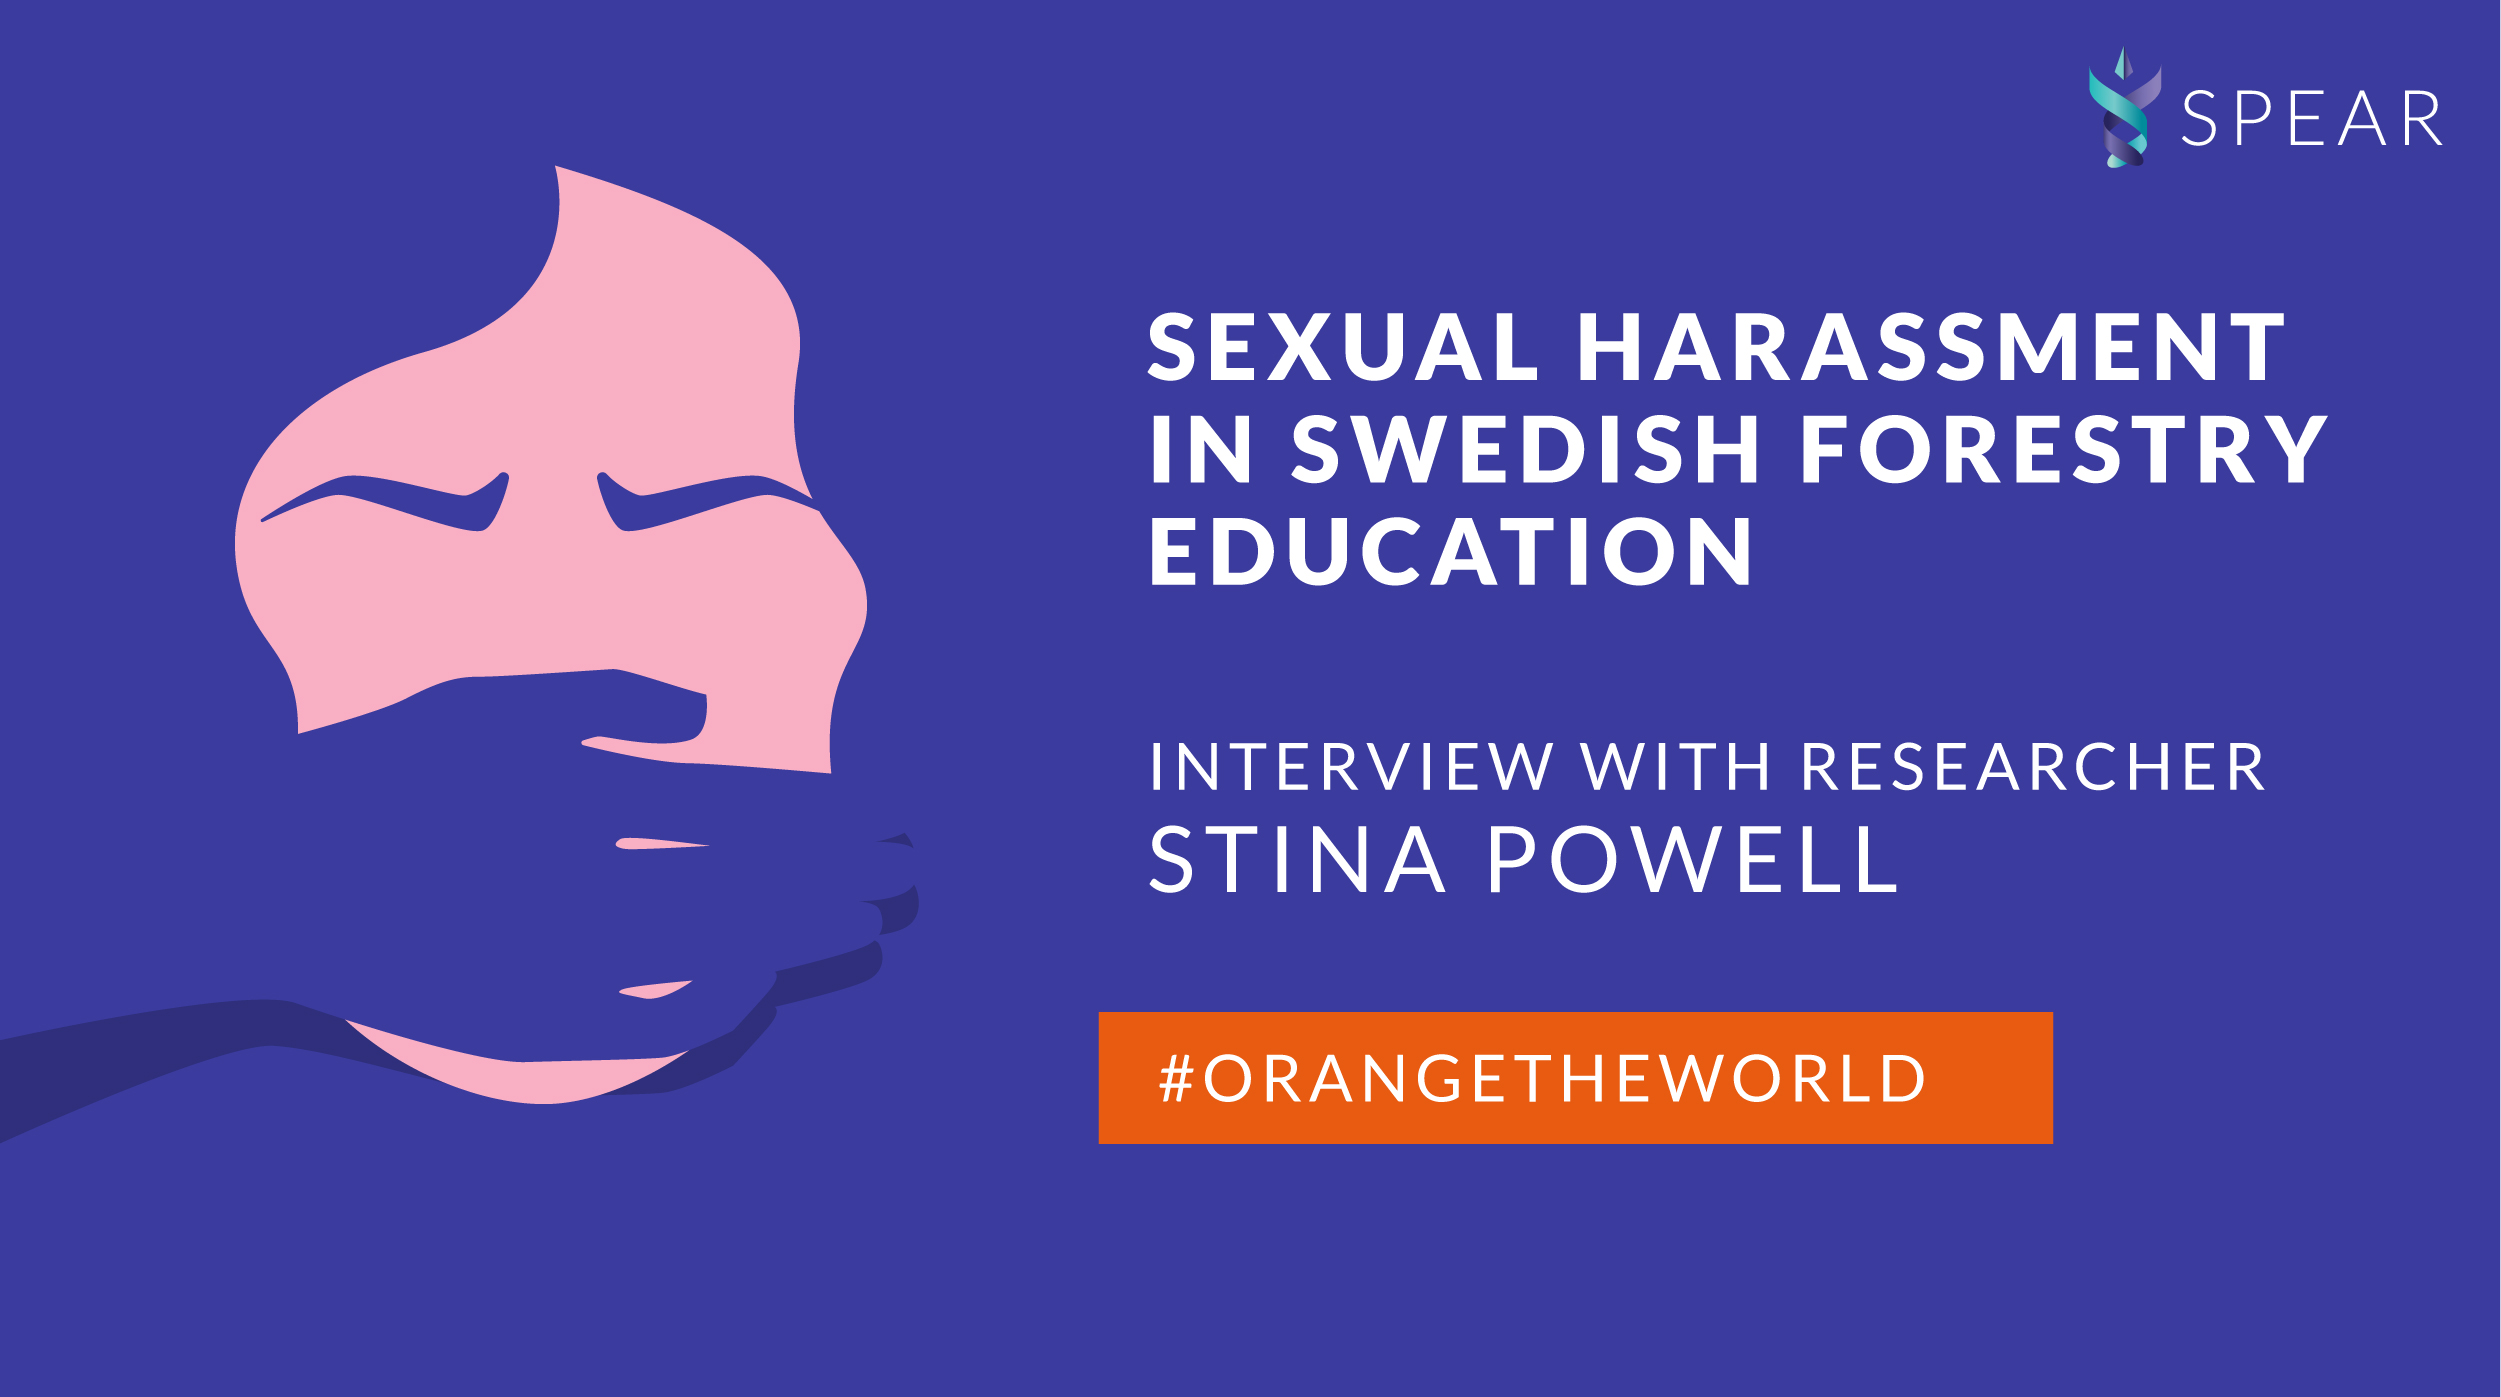 Sexual harassment in Swedish forestry education – interview with researcher Stina Powell